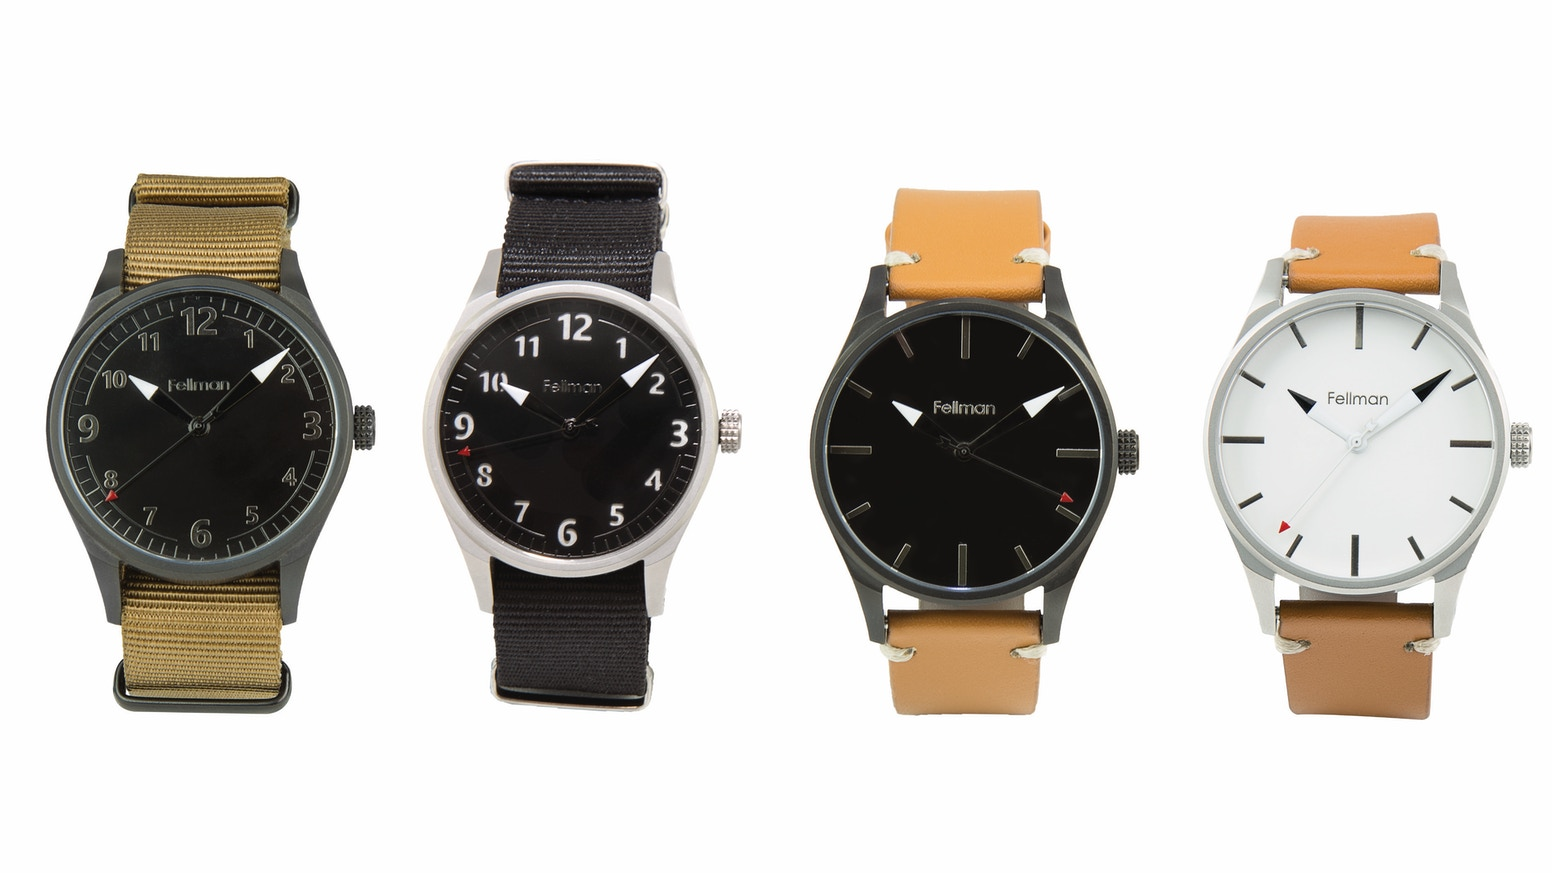 An affordable wristwatch that will survive generations of adventures. Assembled in the USA with Swiss movement and high-quality parts.